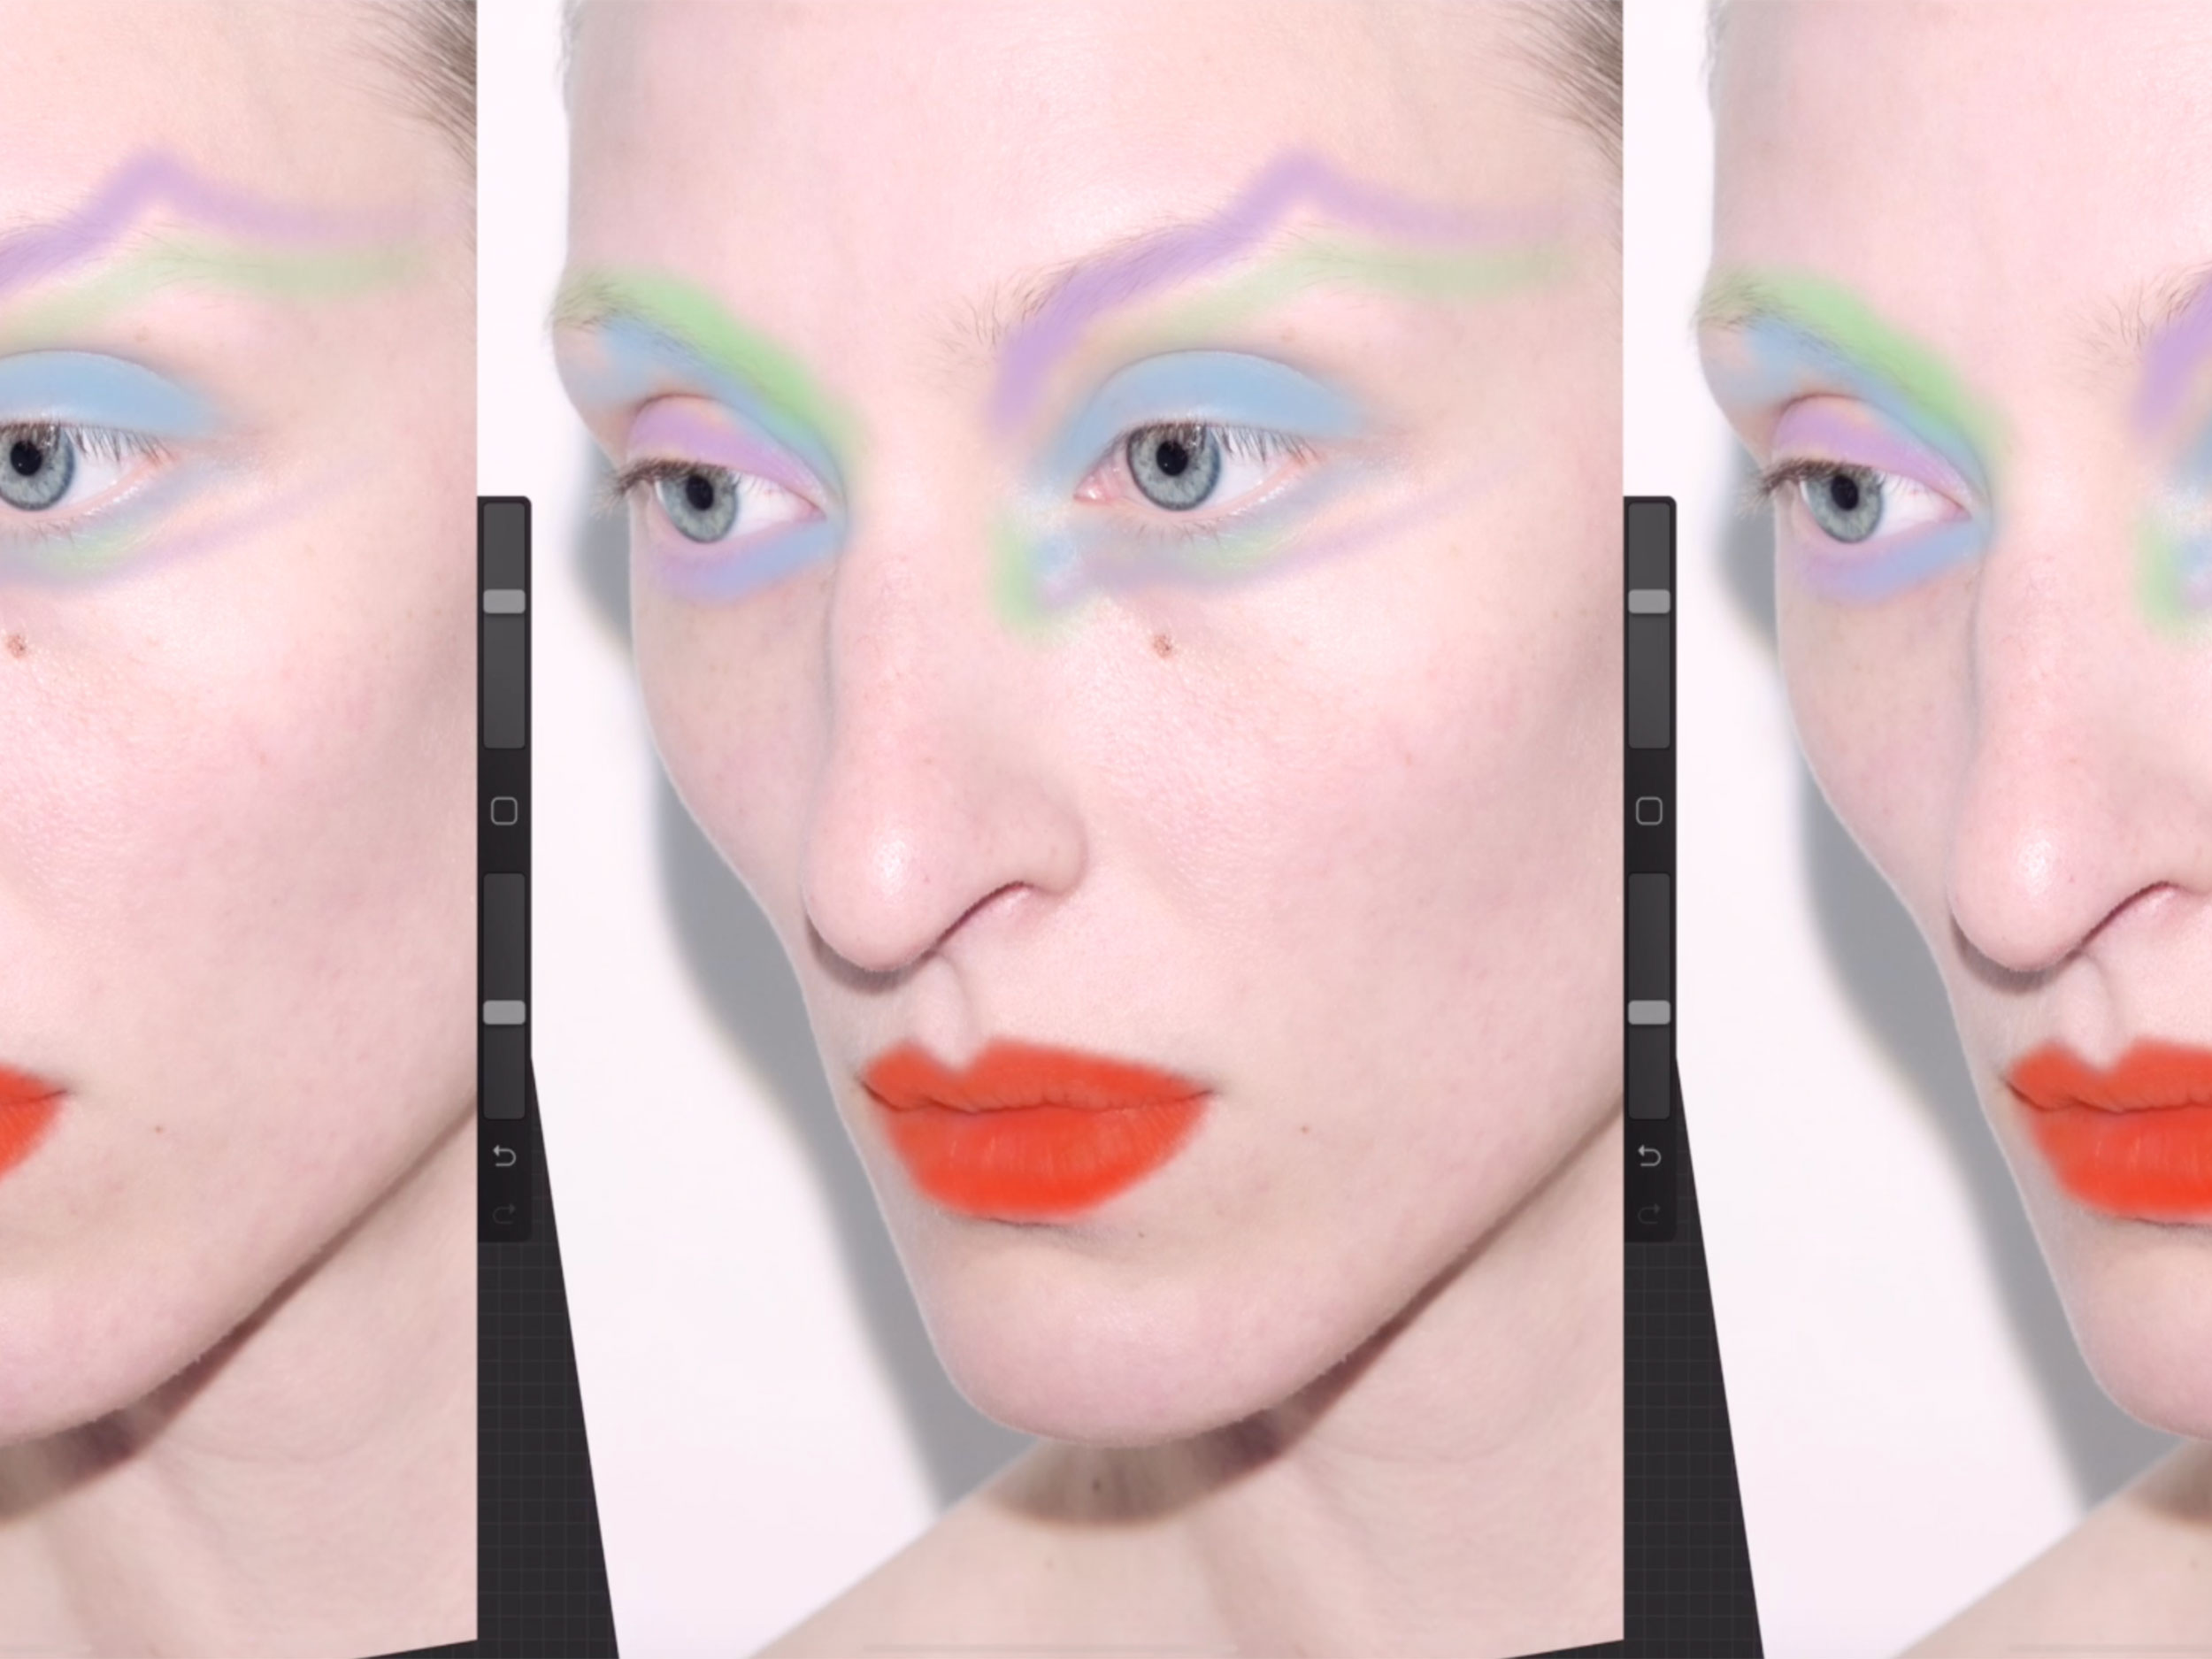 Lucy Bridge unleashes her creativity with digital, contact-free makeup